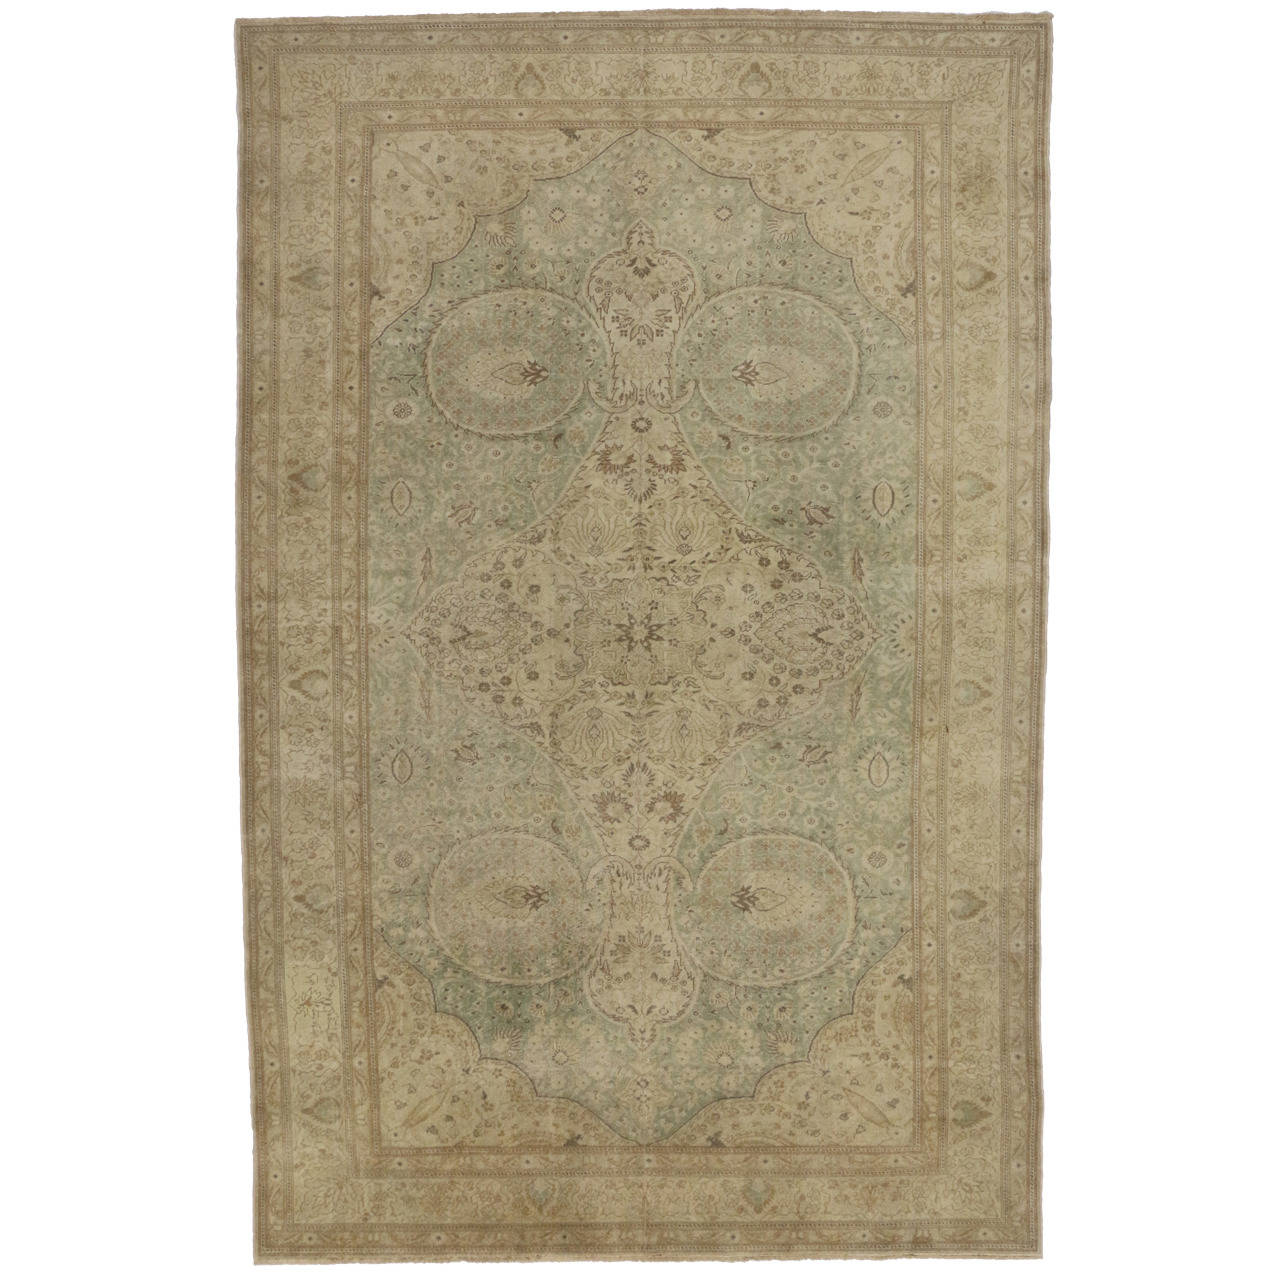 Vintage Turkish Sivas Rug in Soft Muted Colors and Shabby Chic Style